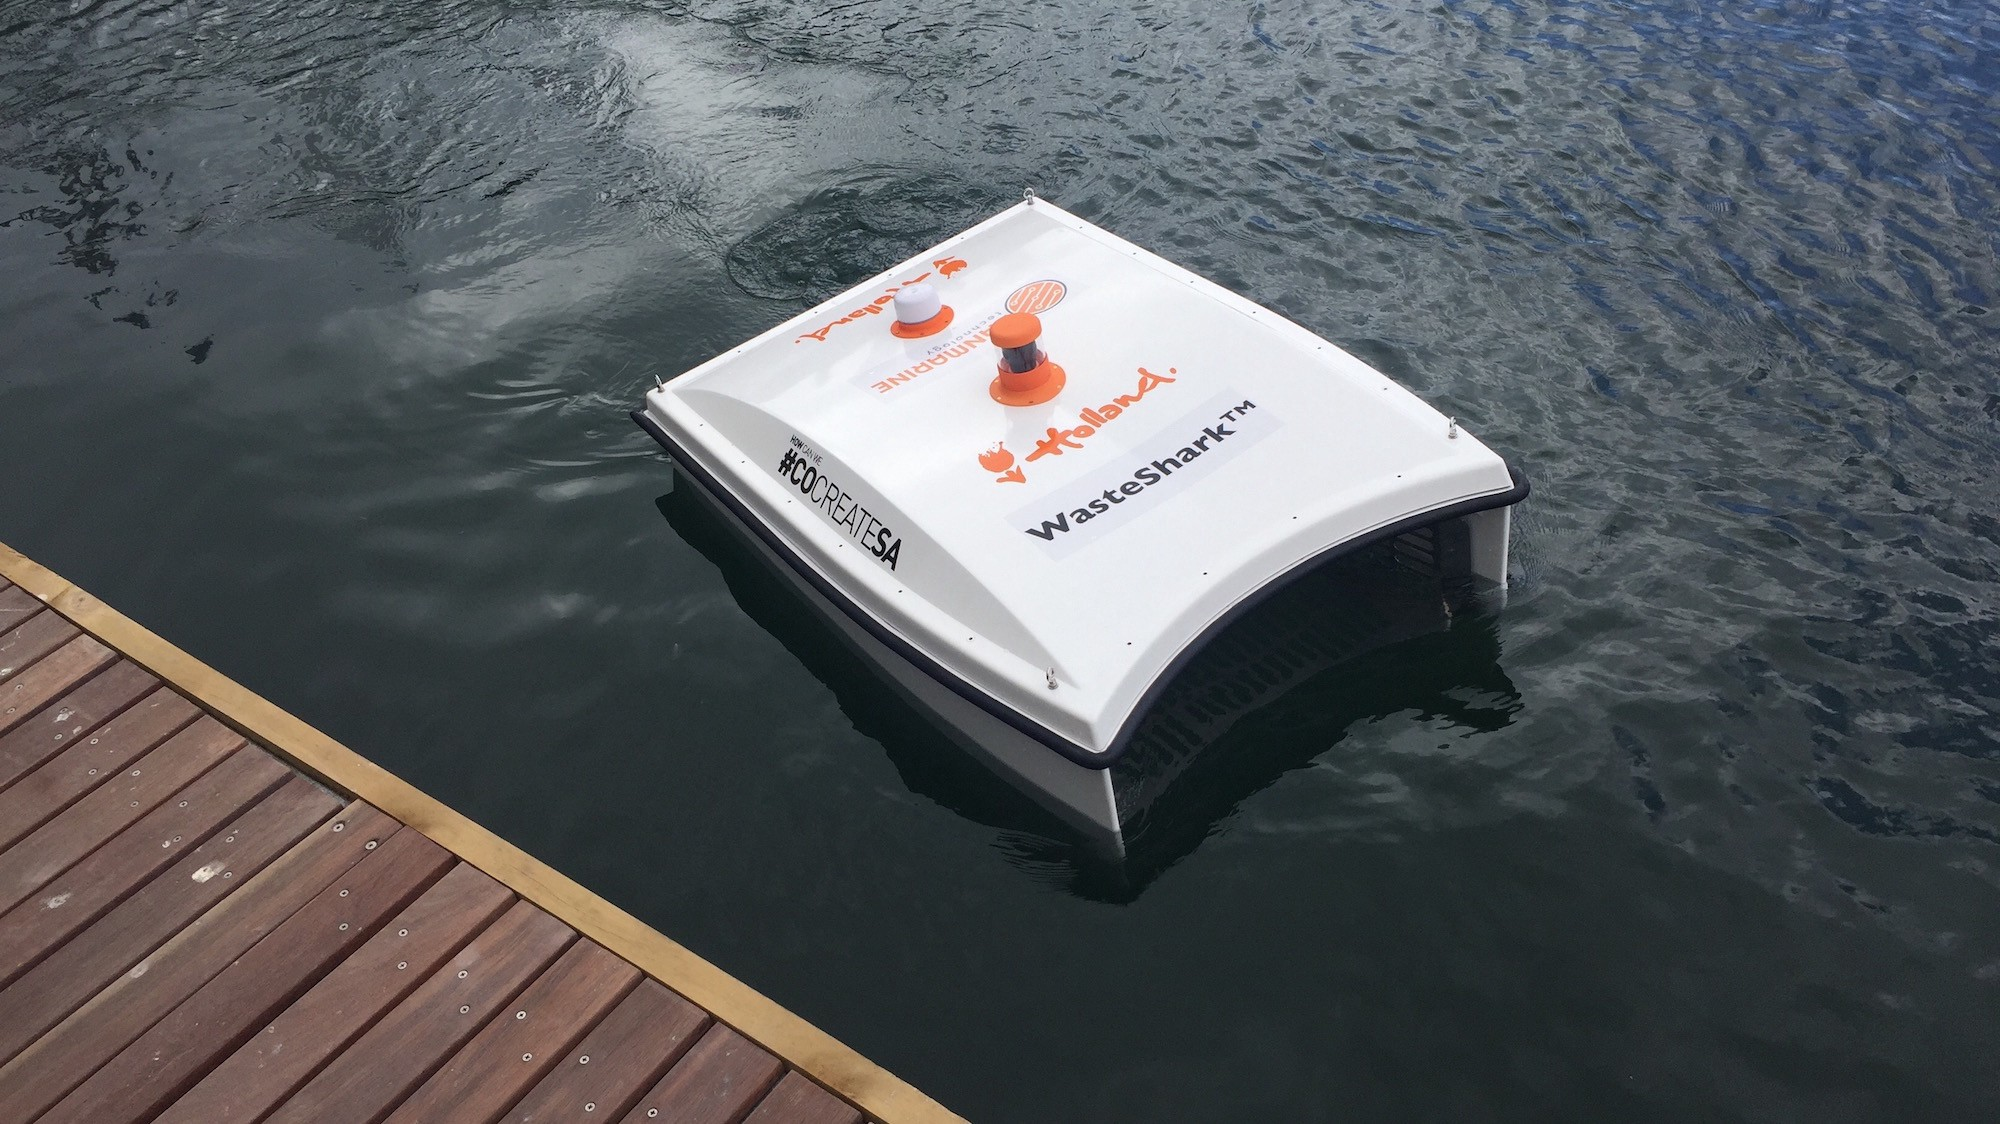 An aqua drone developed by the WasteShark project can collect litter in harbors before it gets carried out into the open sea. Image credit - WasteShark